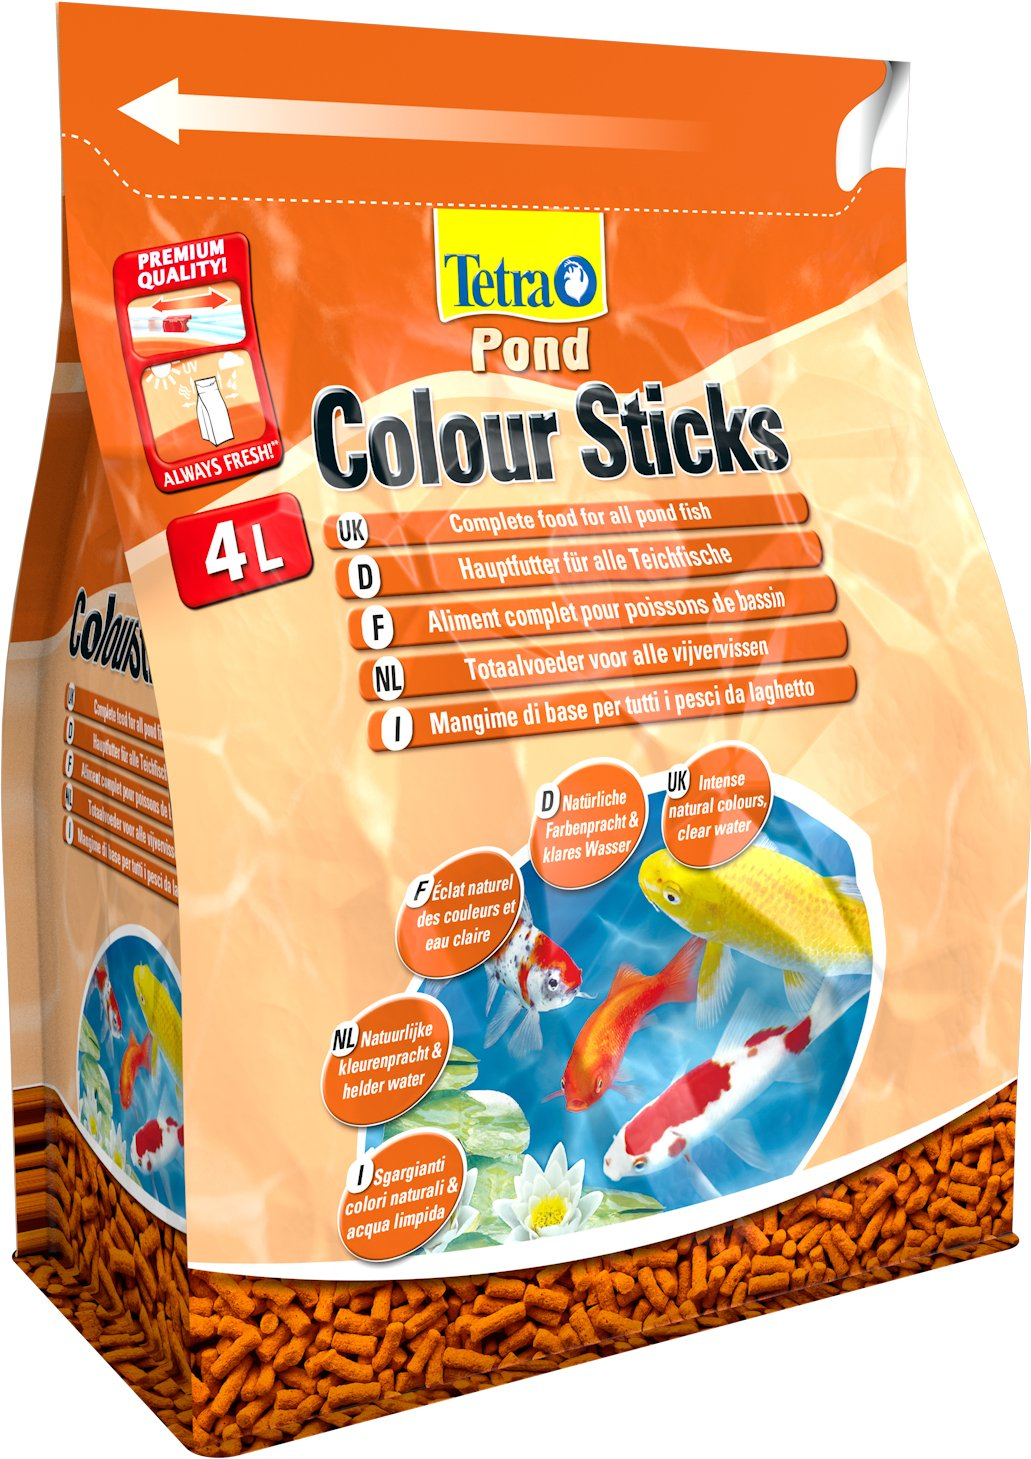 Tetra pond colour sticks 1 0 l 4 0 l 10 0 l for Gartenteichfische shop